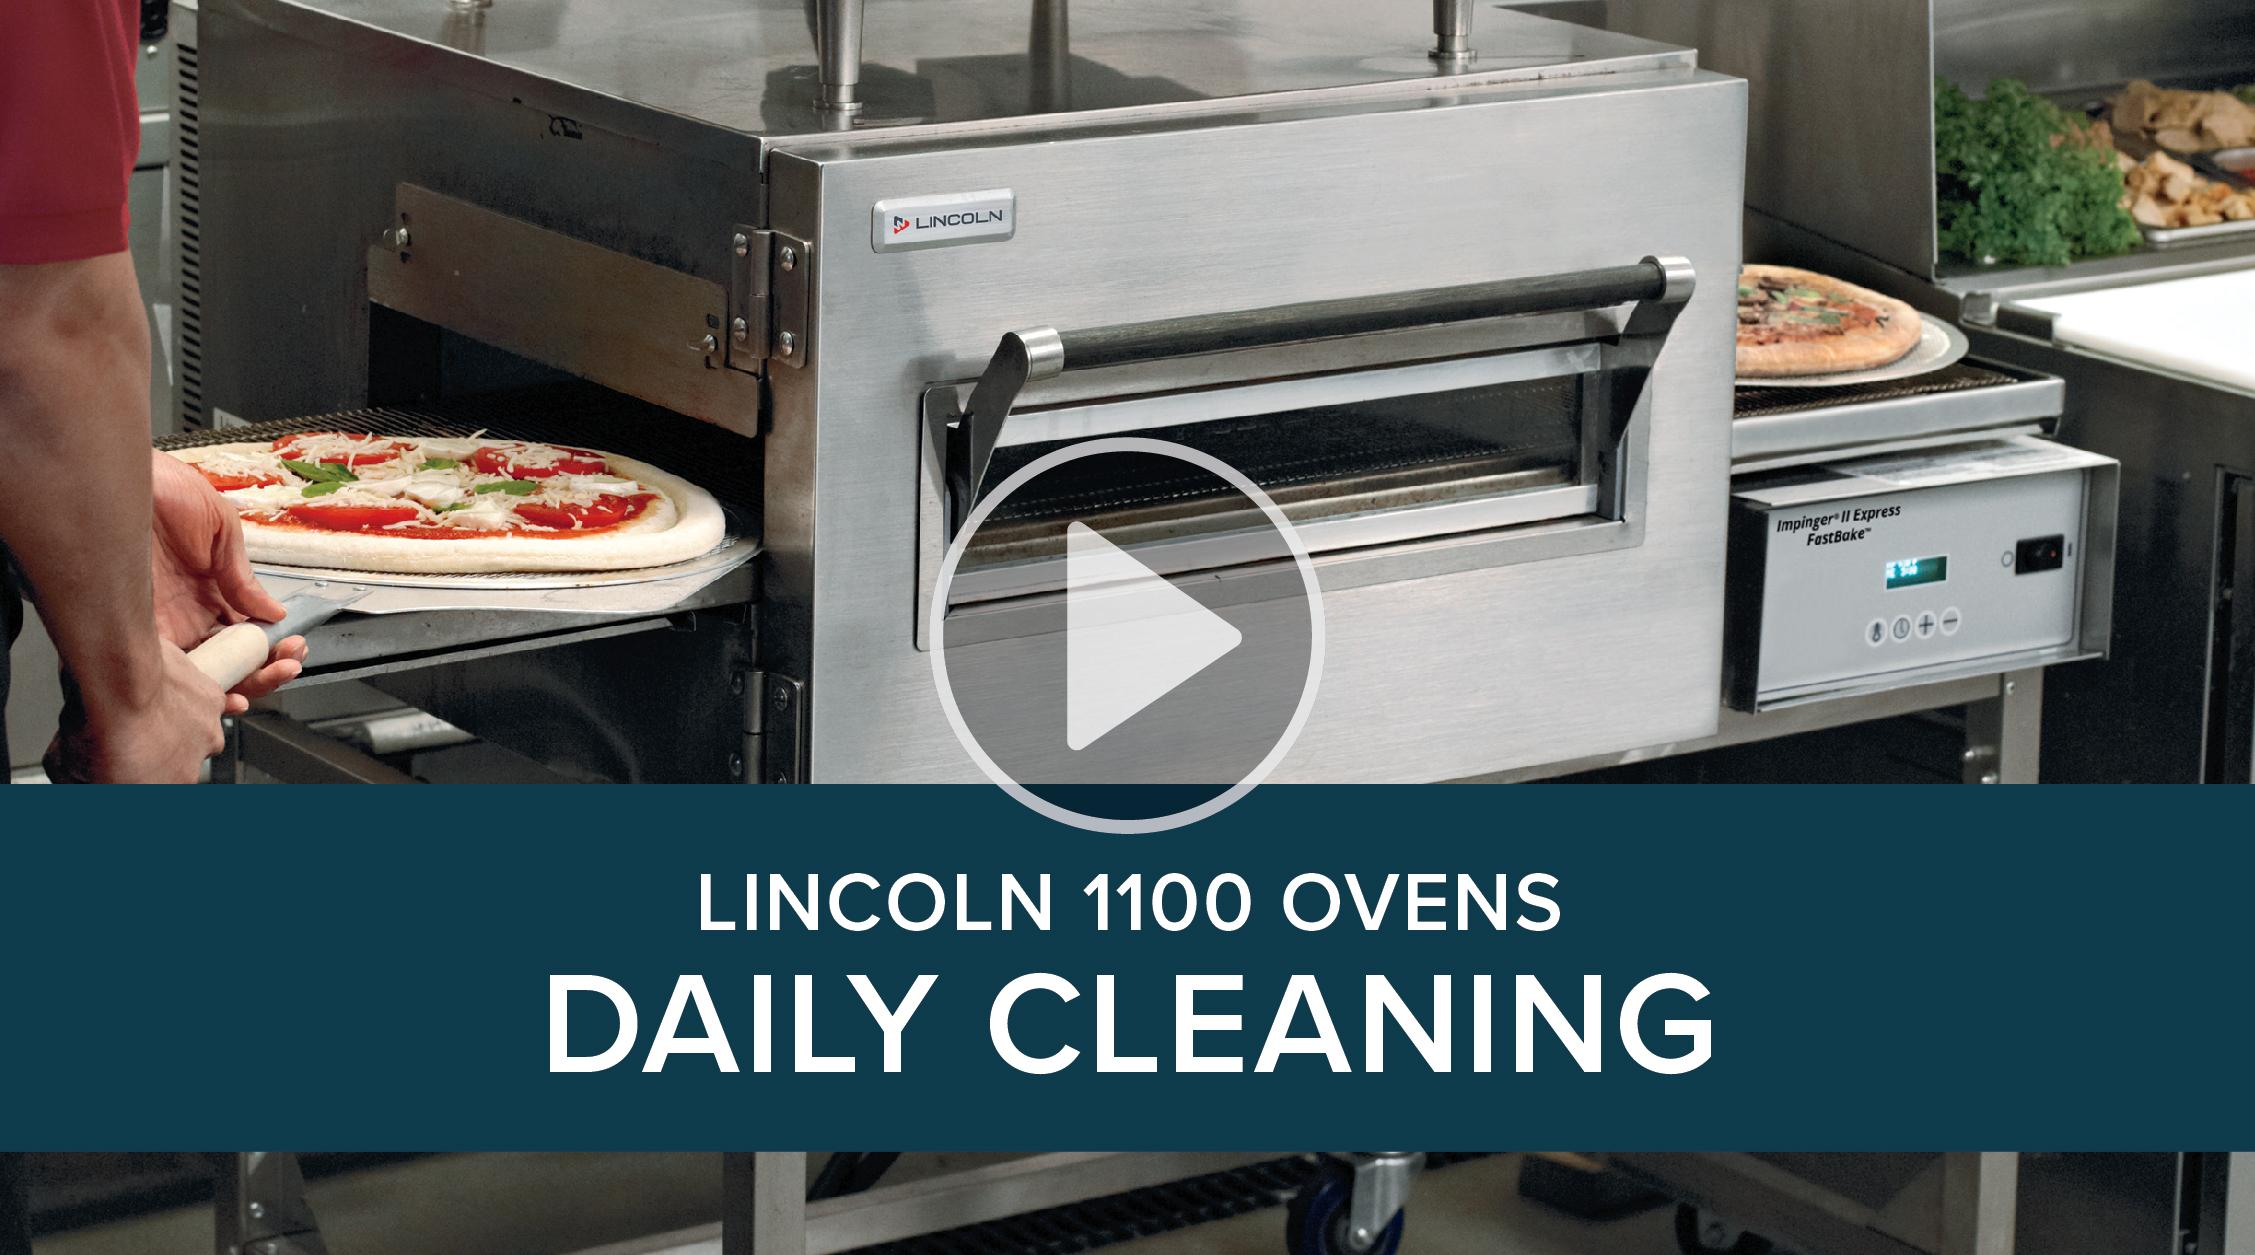 Daily Cleaning Lincoln 1100